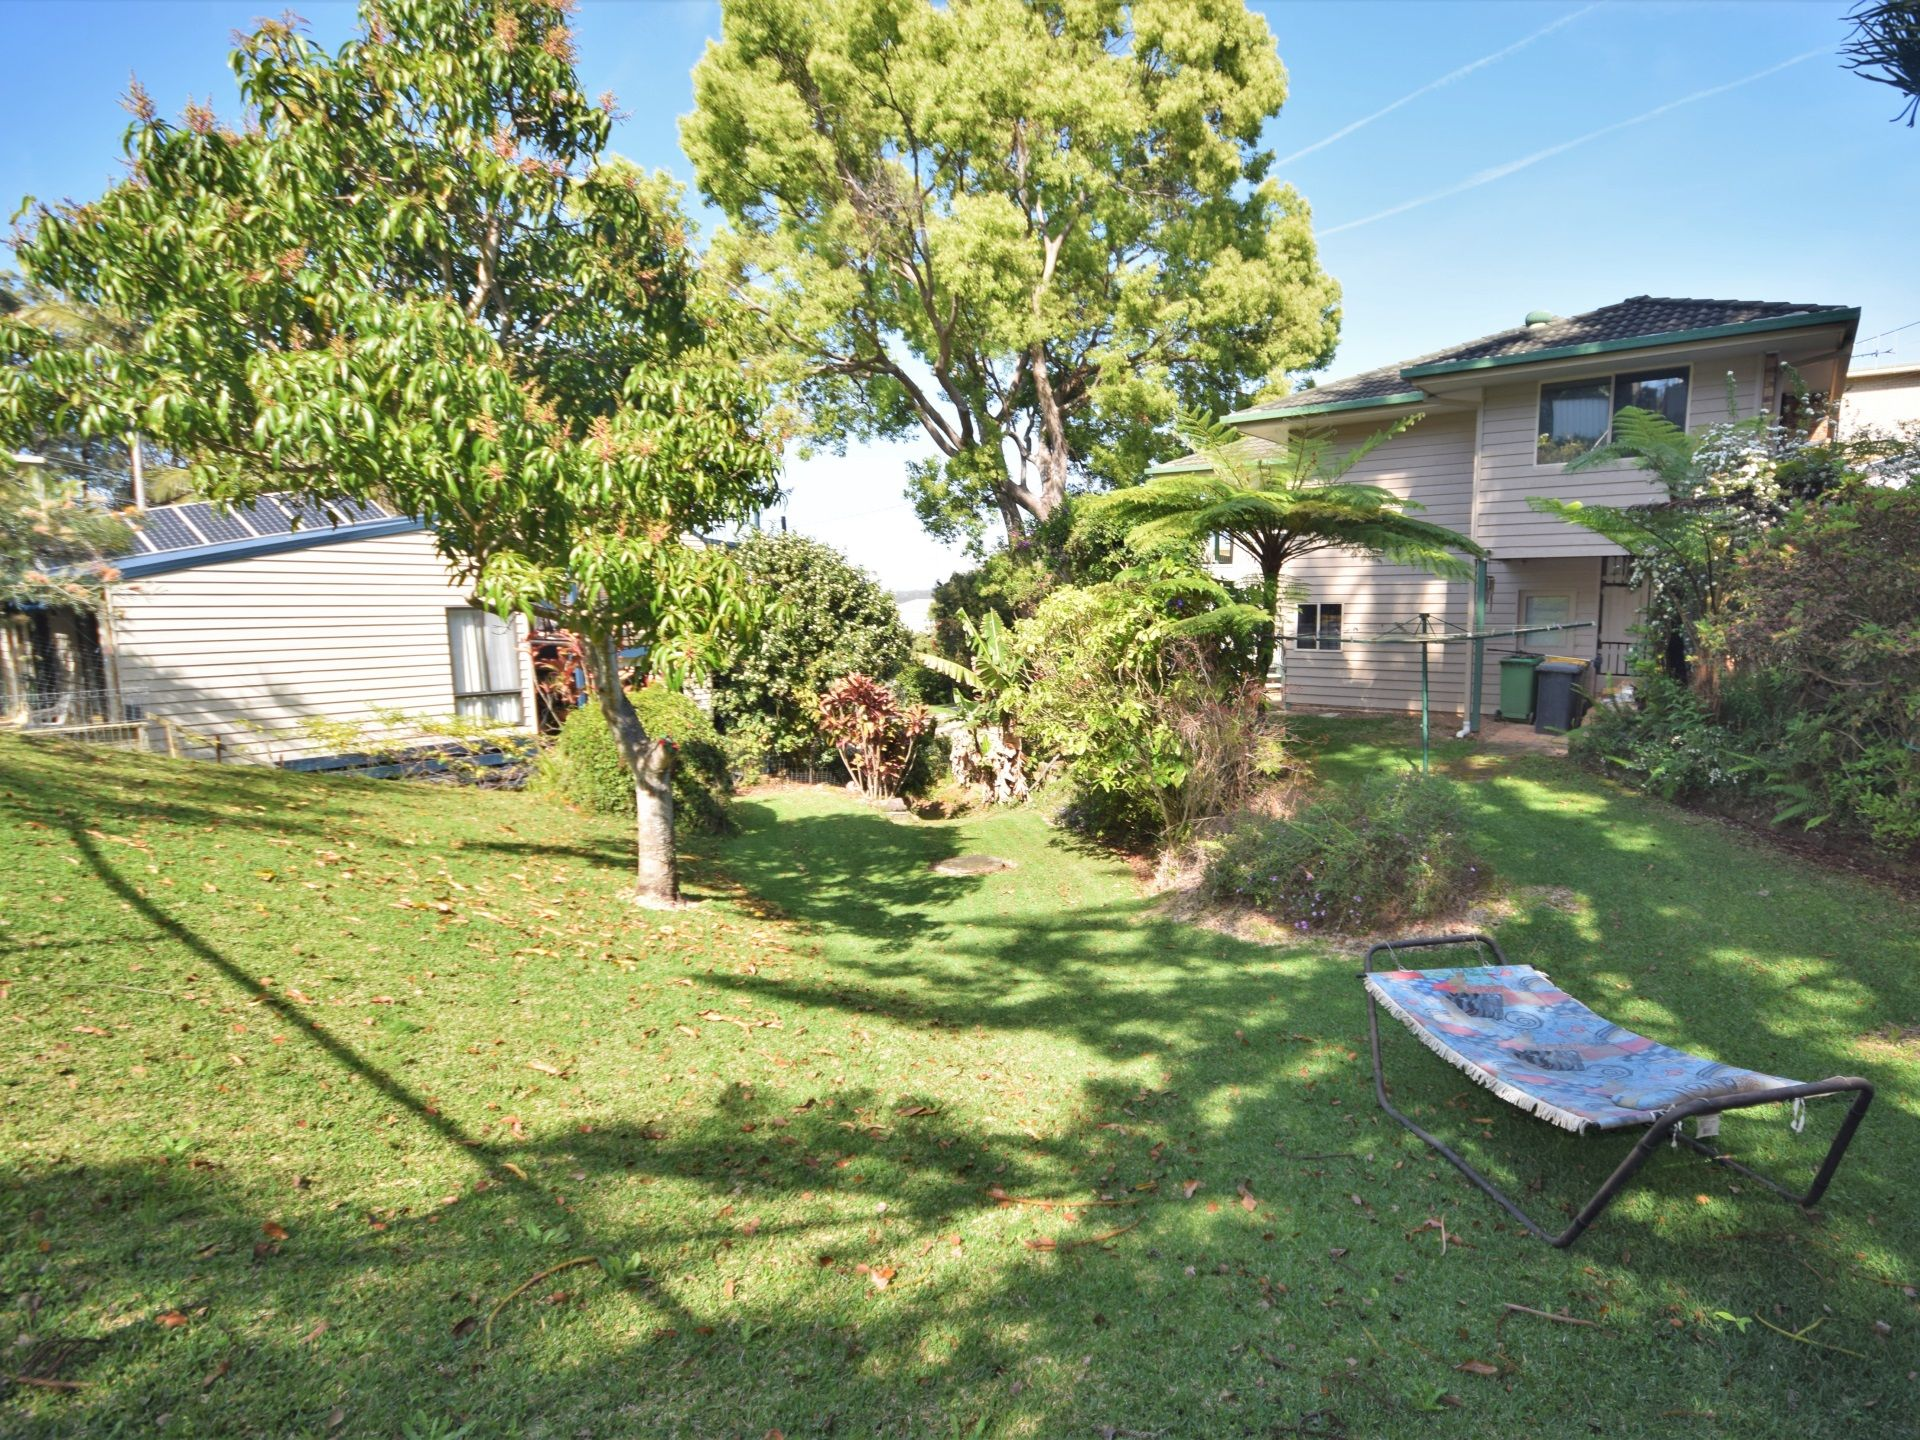 Nambucca Heads Real Estate: Nambucca Heads at Your Door Step